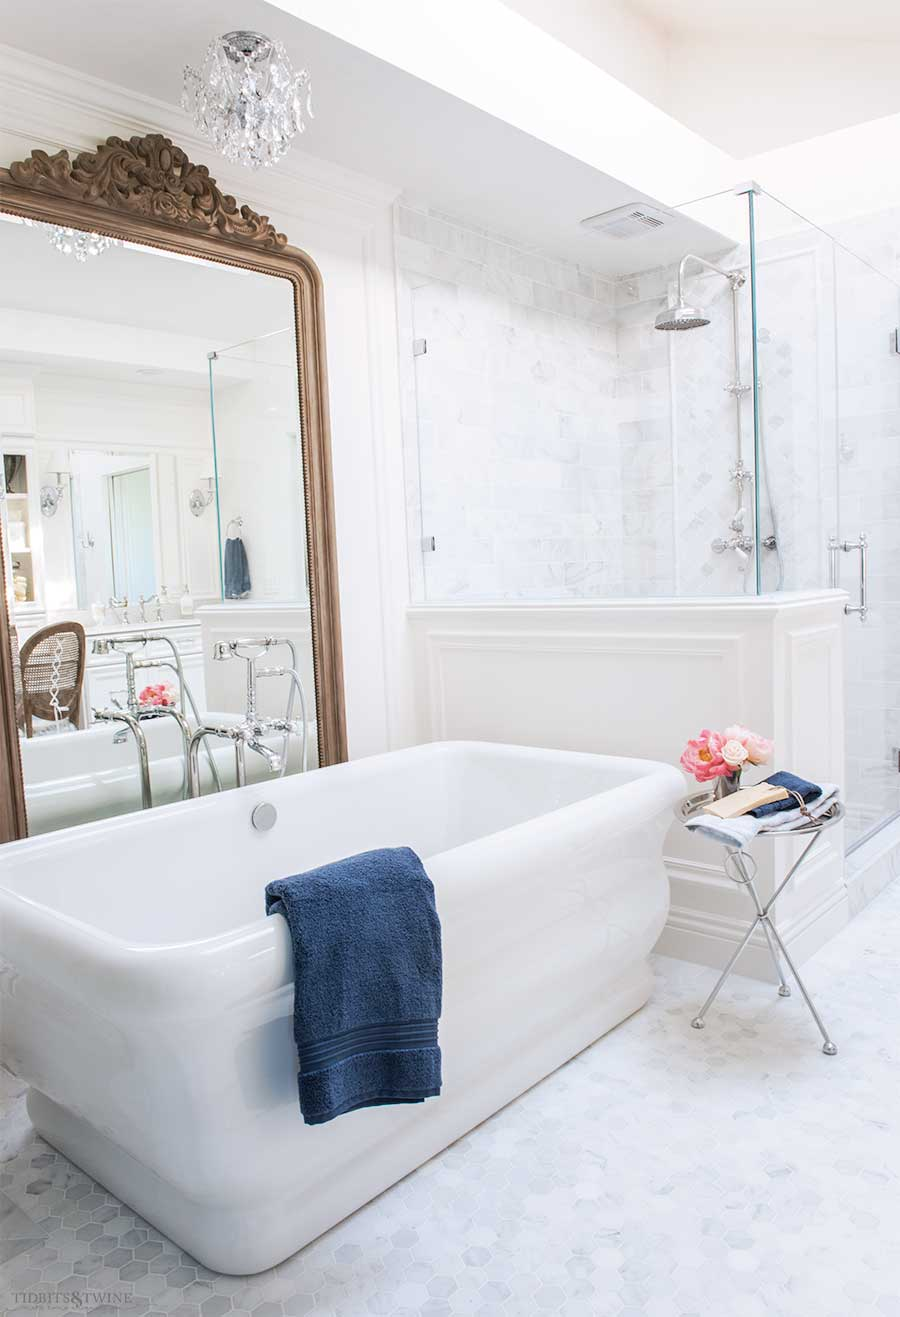 Elegant marble bathroom with freestanding tub and ornate french wood floor mirror behind the tub next to a shower pony wall